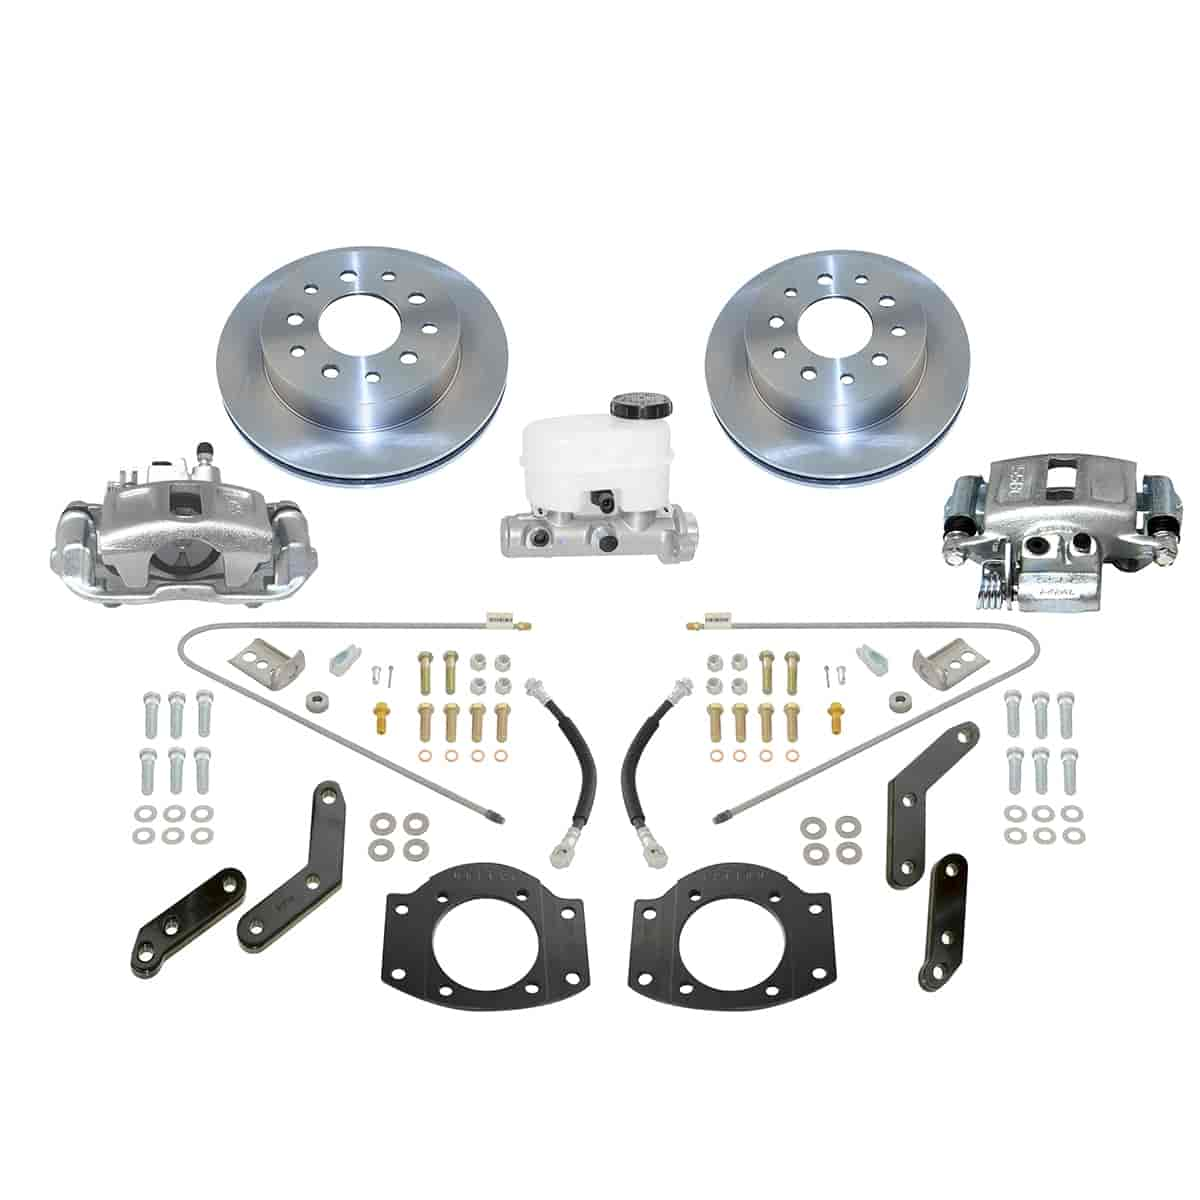 SSBC A126-5 - Stainless Steel Brakes Single Piston Rear Drum to Disc Brake Conversion Kits